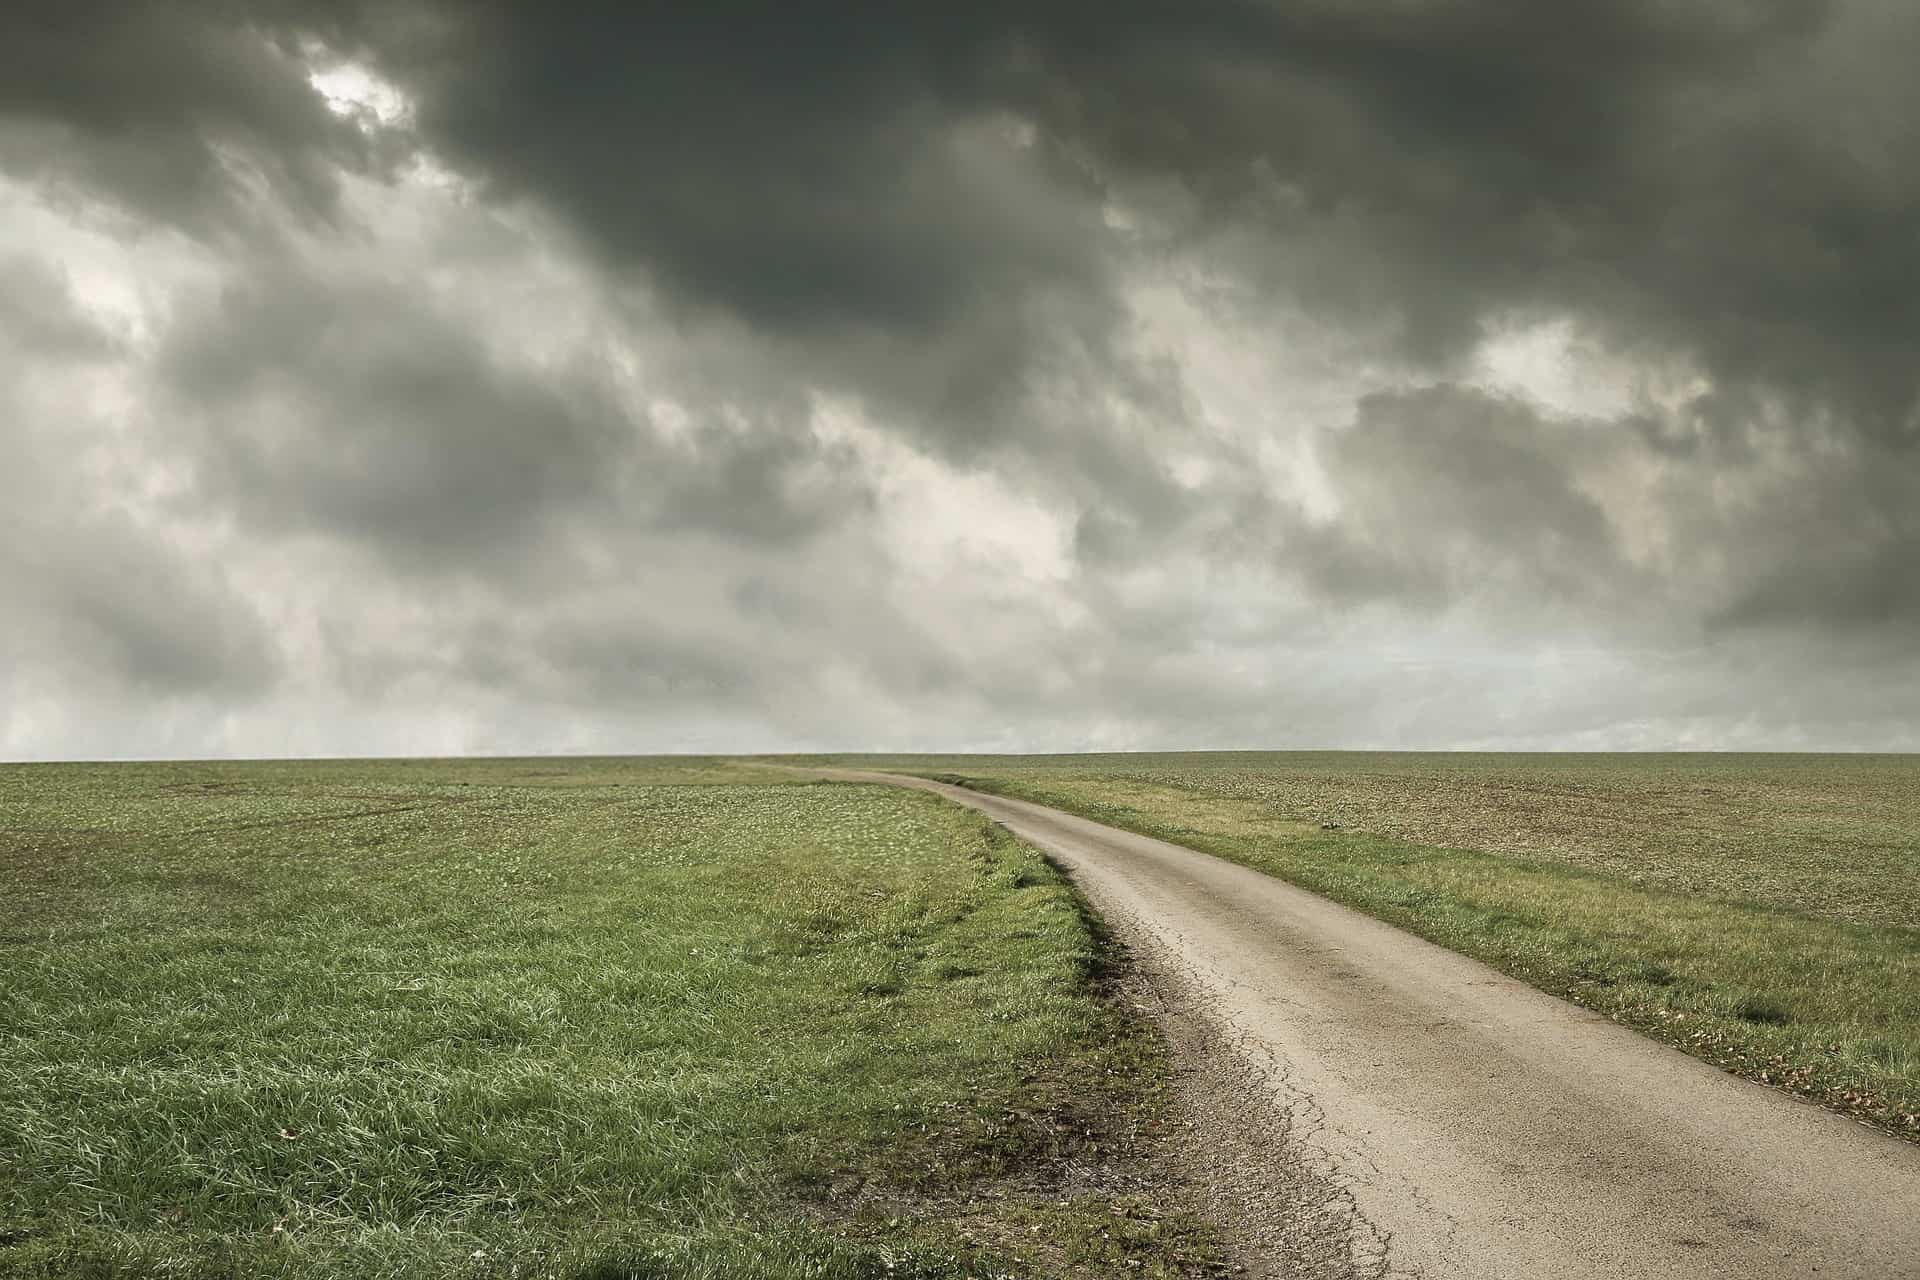 A dirt road with a flat horizon and a stormy sky.